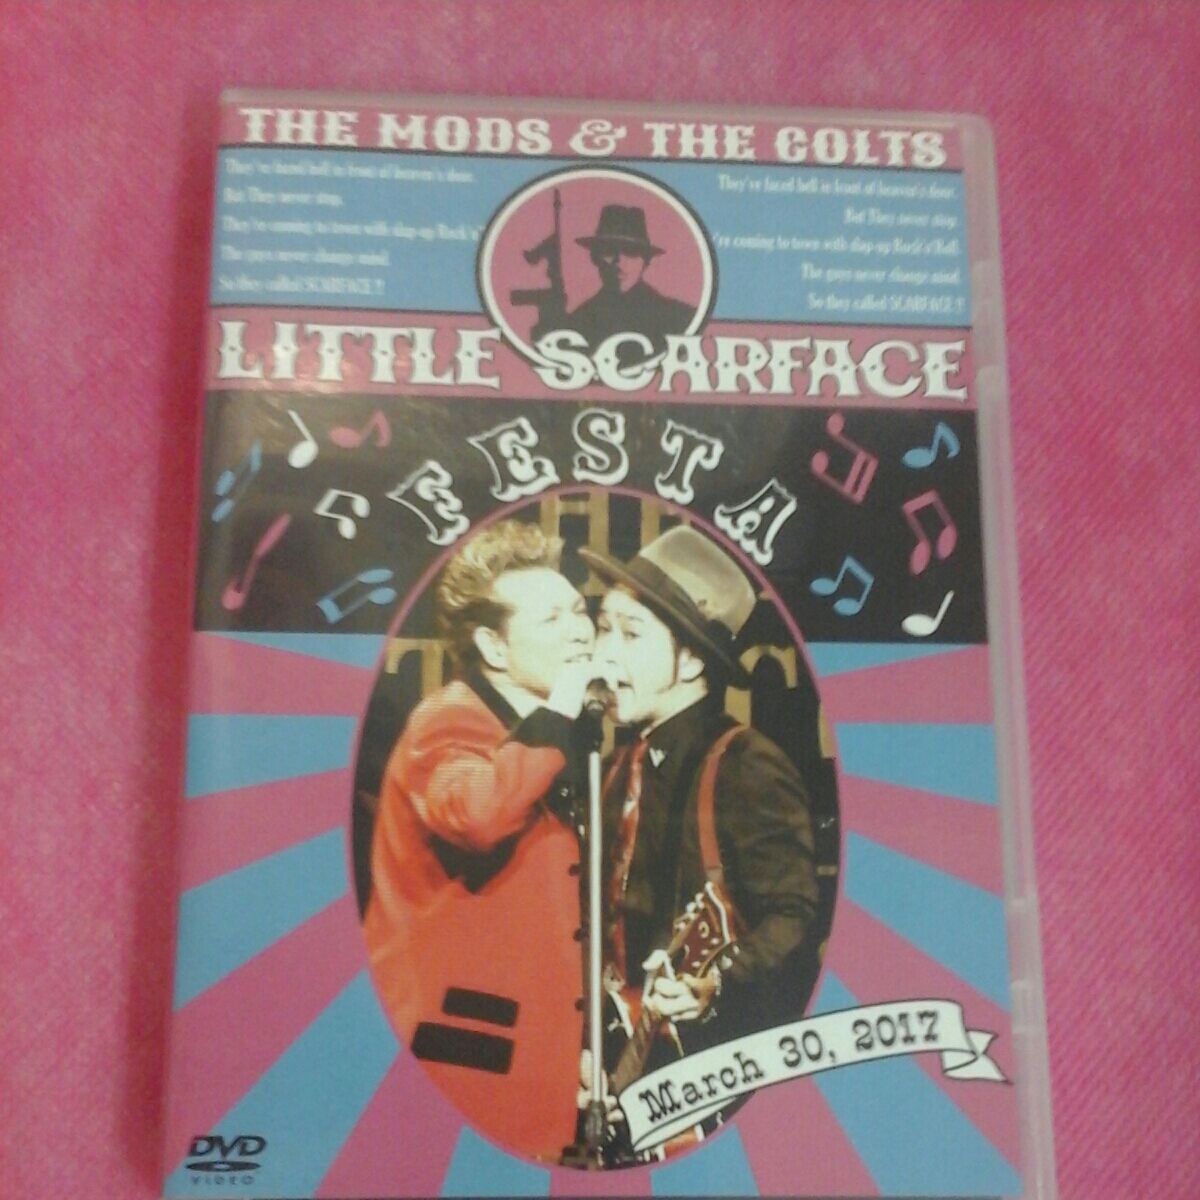 DVD THE MODS & THE COLTS LITTLE SCARFACE FESTA